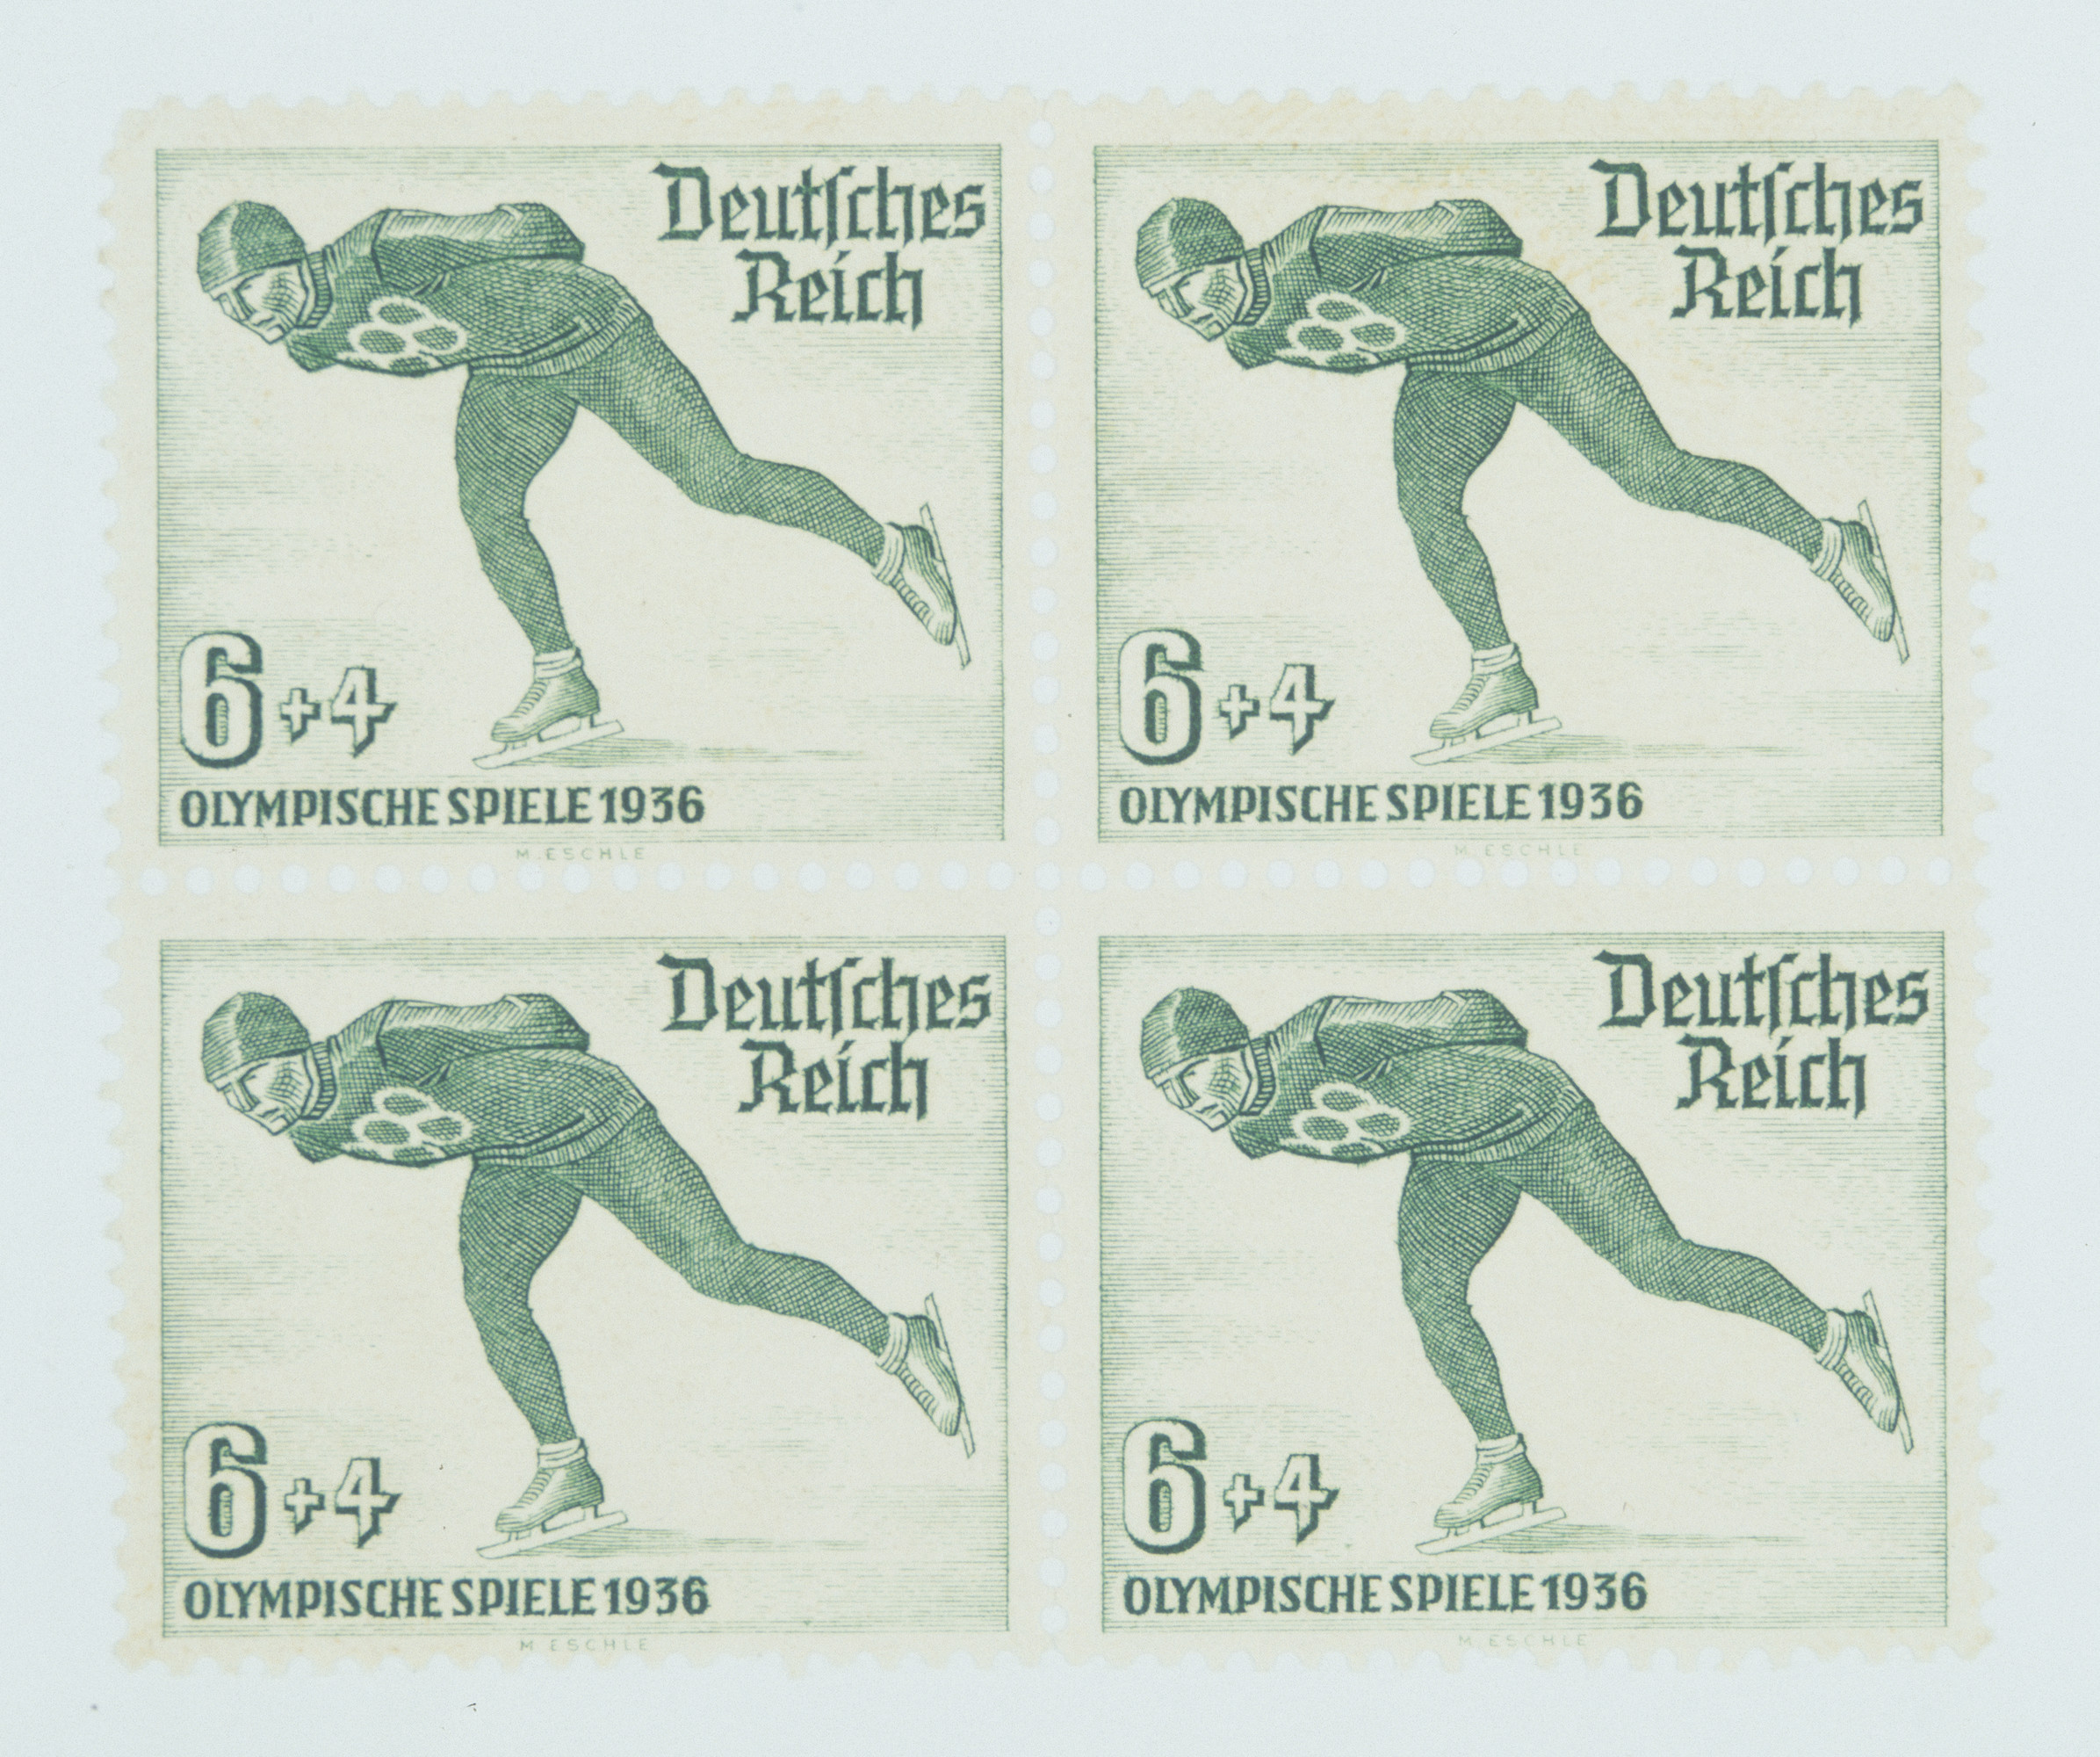 Third Reich stamps commemorating the Berlin Olympic Games of 1936.